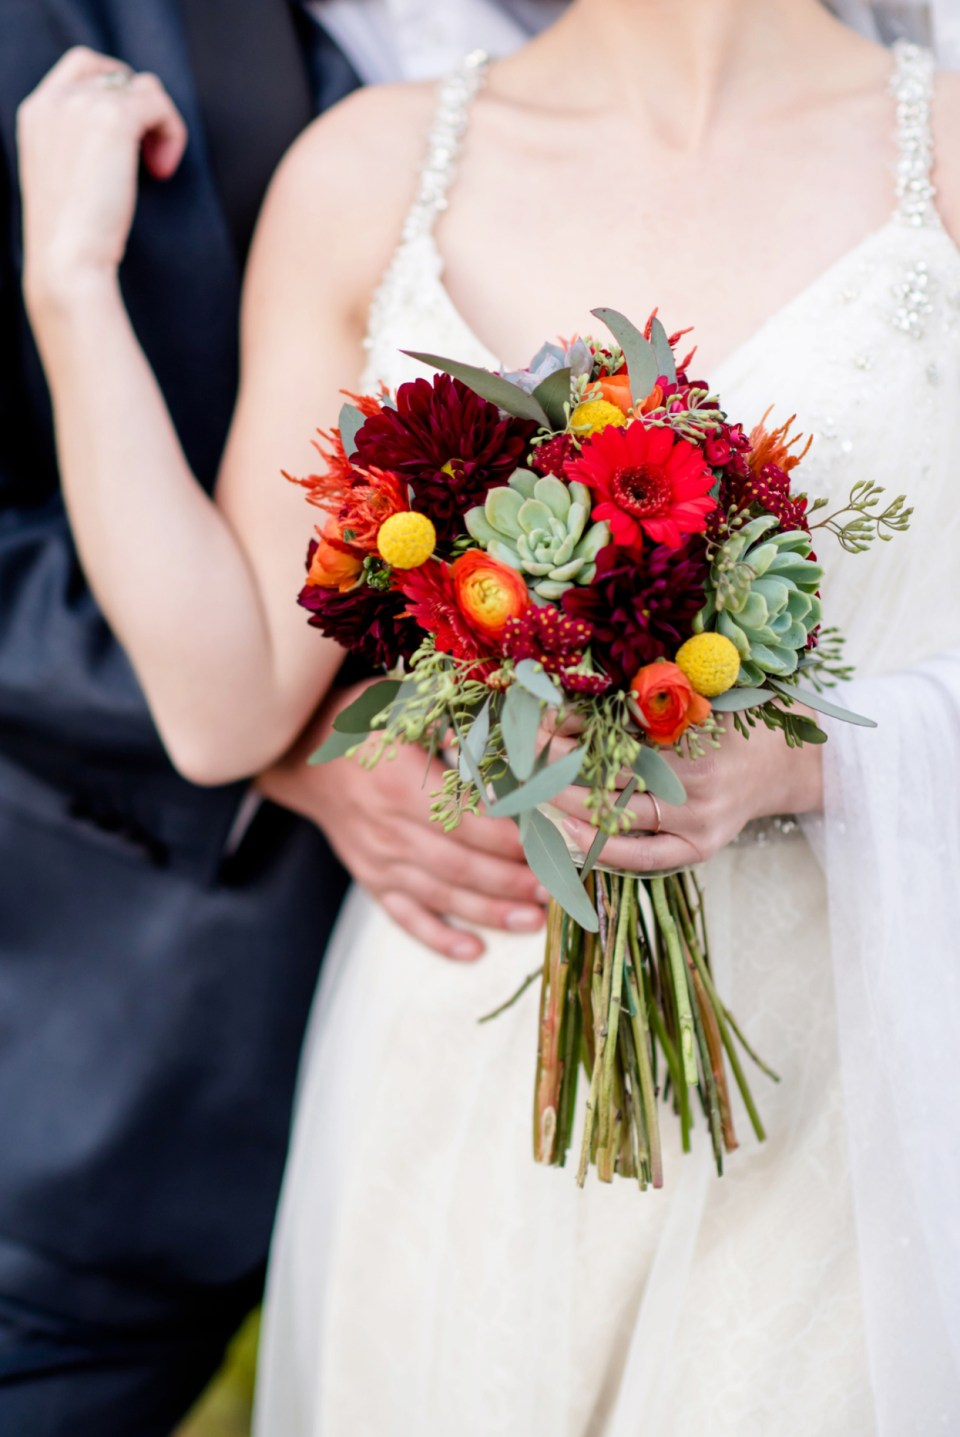 Fall-Wedding-Bouquet-Inspiration-Flowers-Bridal-Bridesmaids403